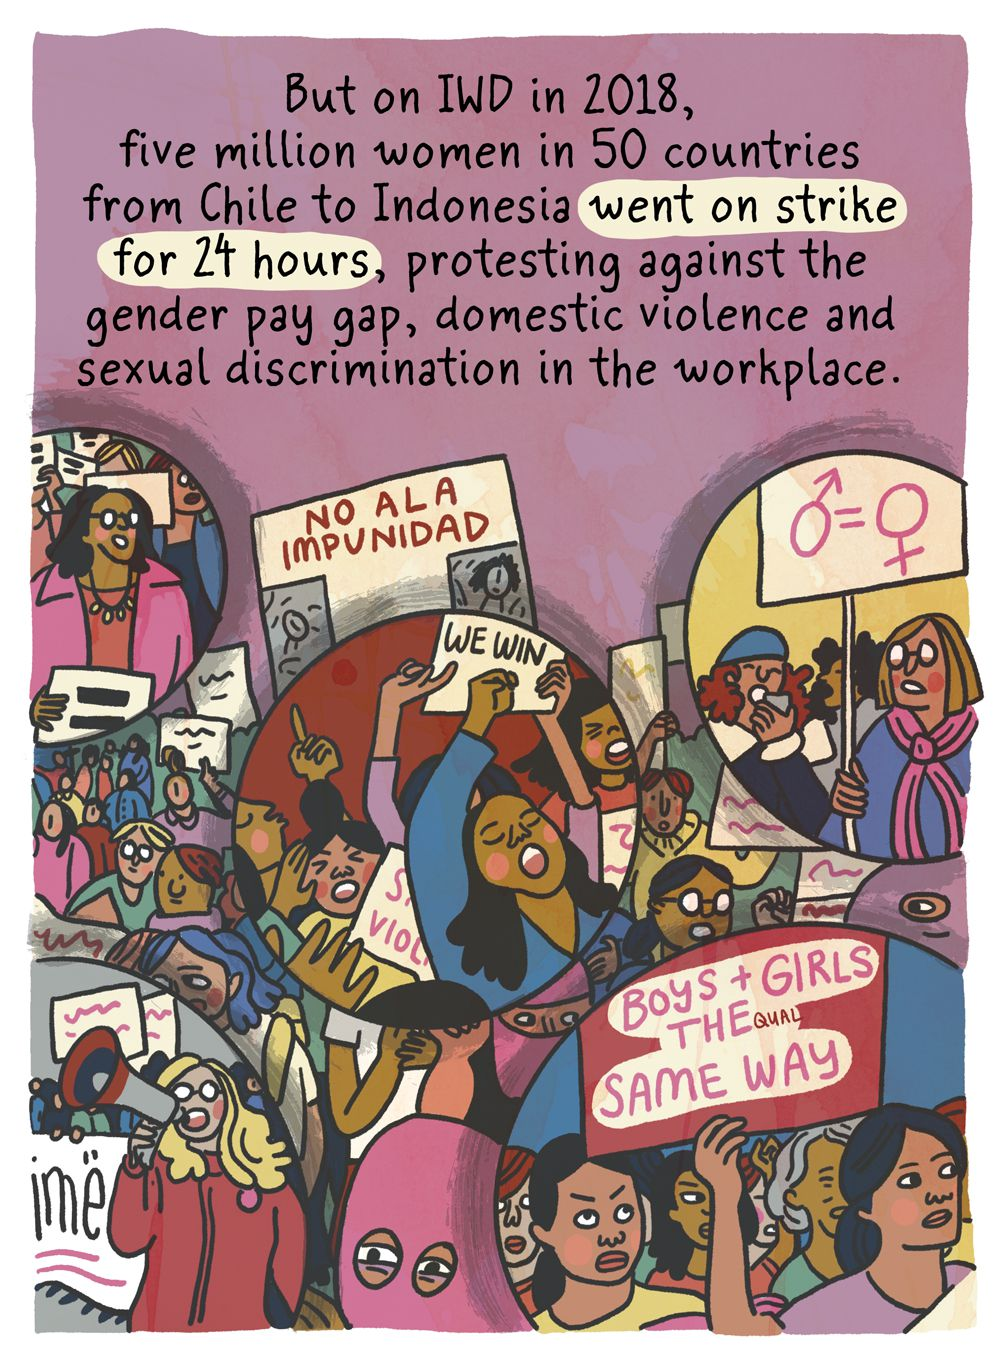 But on IWD in 2017 & 2018, 5 million women in 50 countries from Pakistan to Poland went on strike for 24 hours, protesting against the gender pay gap, domestic violence, and sexual discrimination in the workplace.